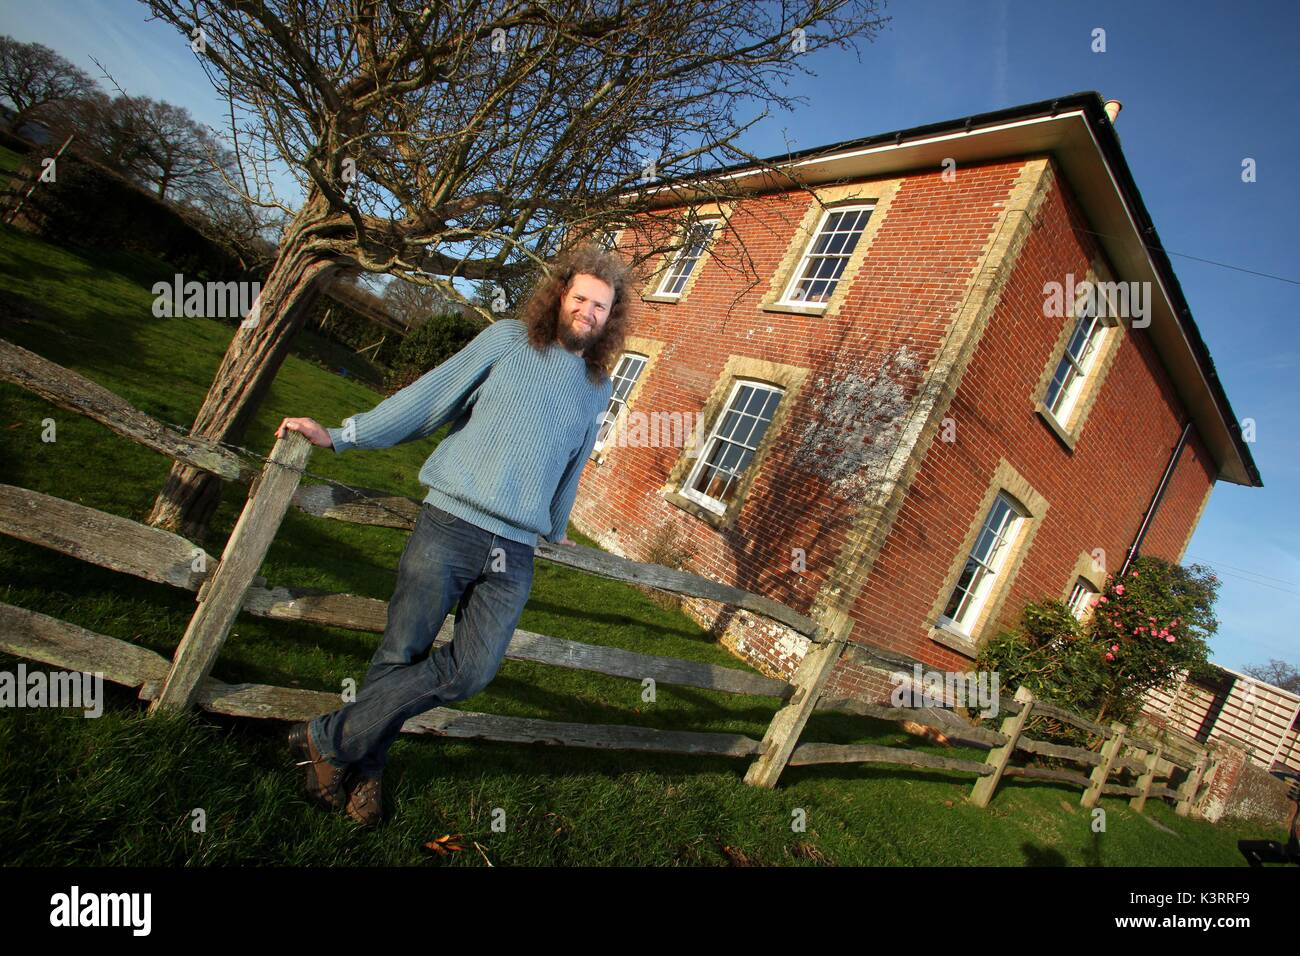 06/01/2012 - ECONOMICS LECTURER RICHARD TOL AT HIS NEW HOME IN BARCOMBE, EAST SUSSEX. Tol is a Professor at the Stock Photo